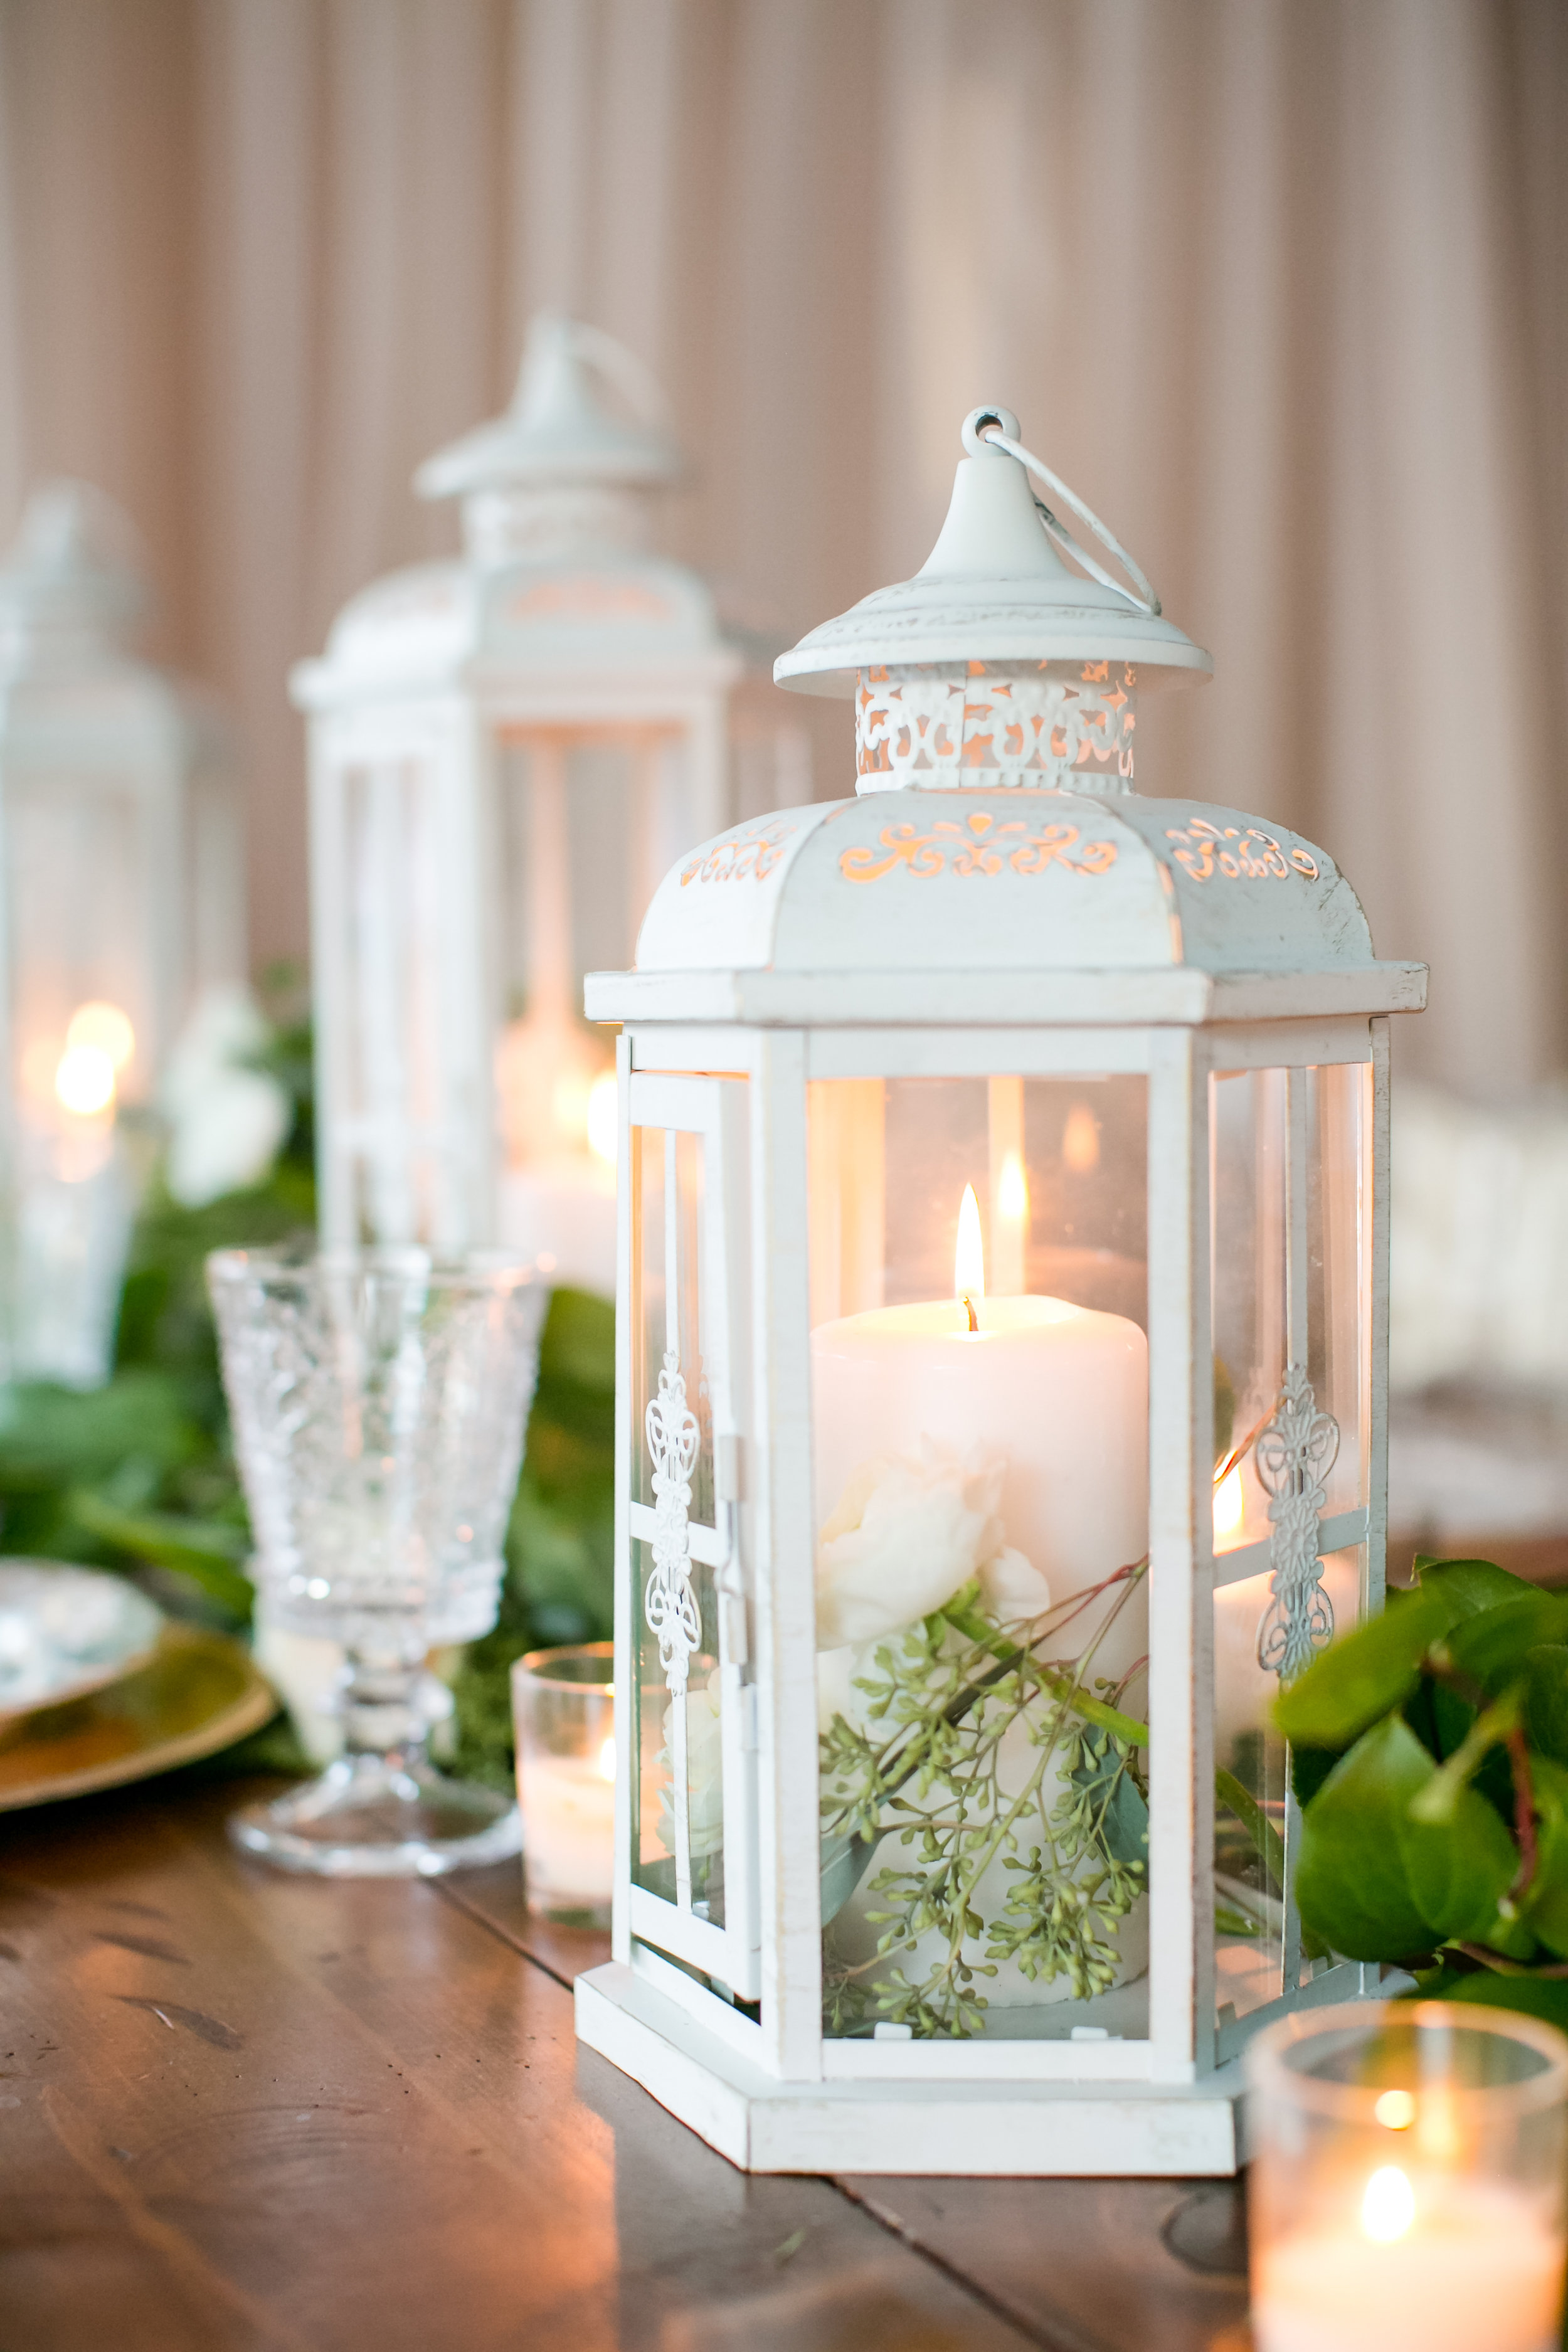 Jeannine Marie Photography | We've Got it Covered | Bel Fiore | Sixpence Events & Planning table styling for wedding blush backdrop, harvest table, clear chiavari chairs with white chair drape, white lanterns and greenery runner